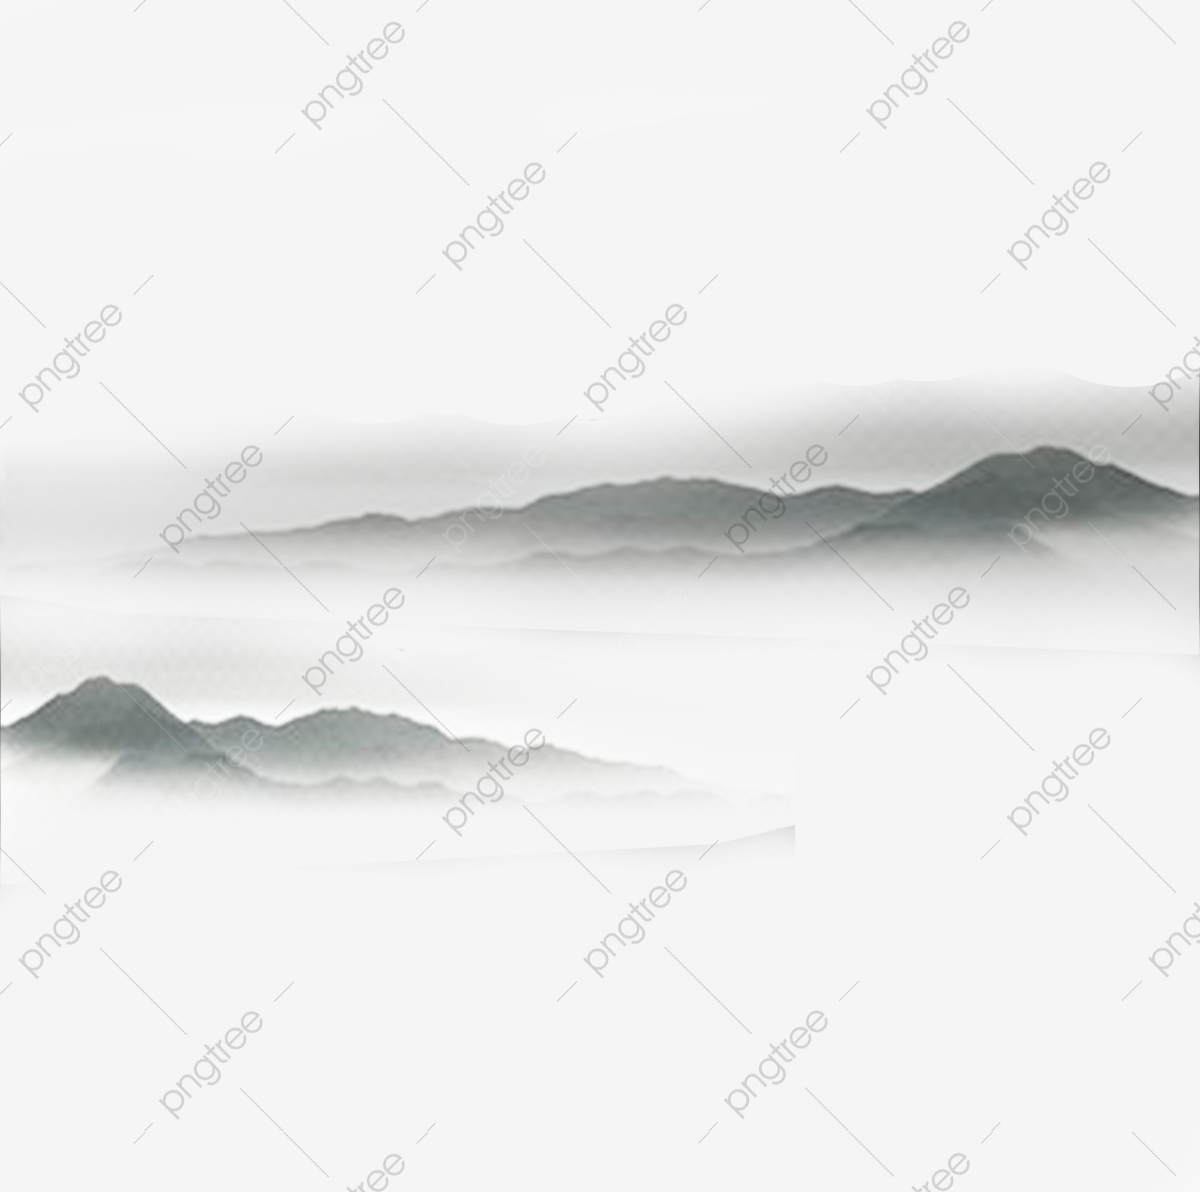 e35f66748 Commercial use resource. Upgrade to Premium plan and get license  authorization.UpgradeNow · chinese style ink painting far mountain water  cloud ...